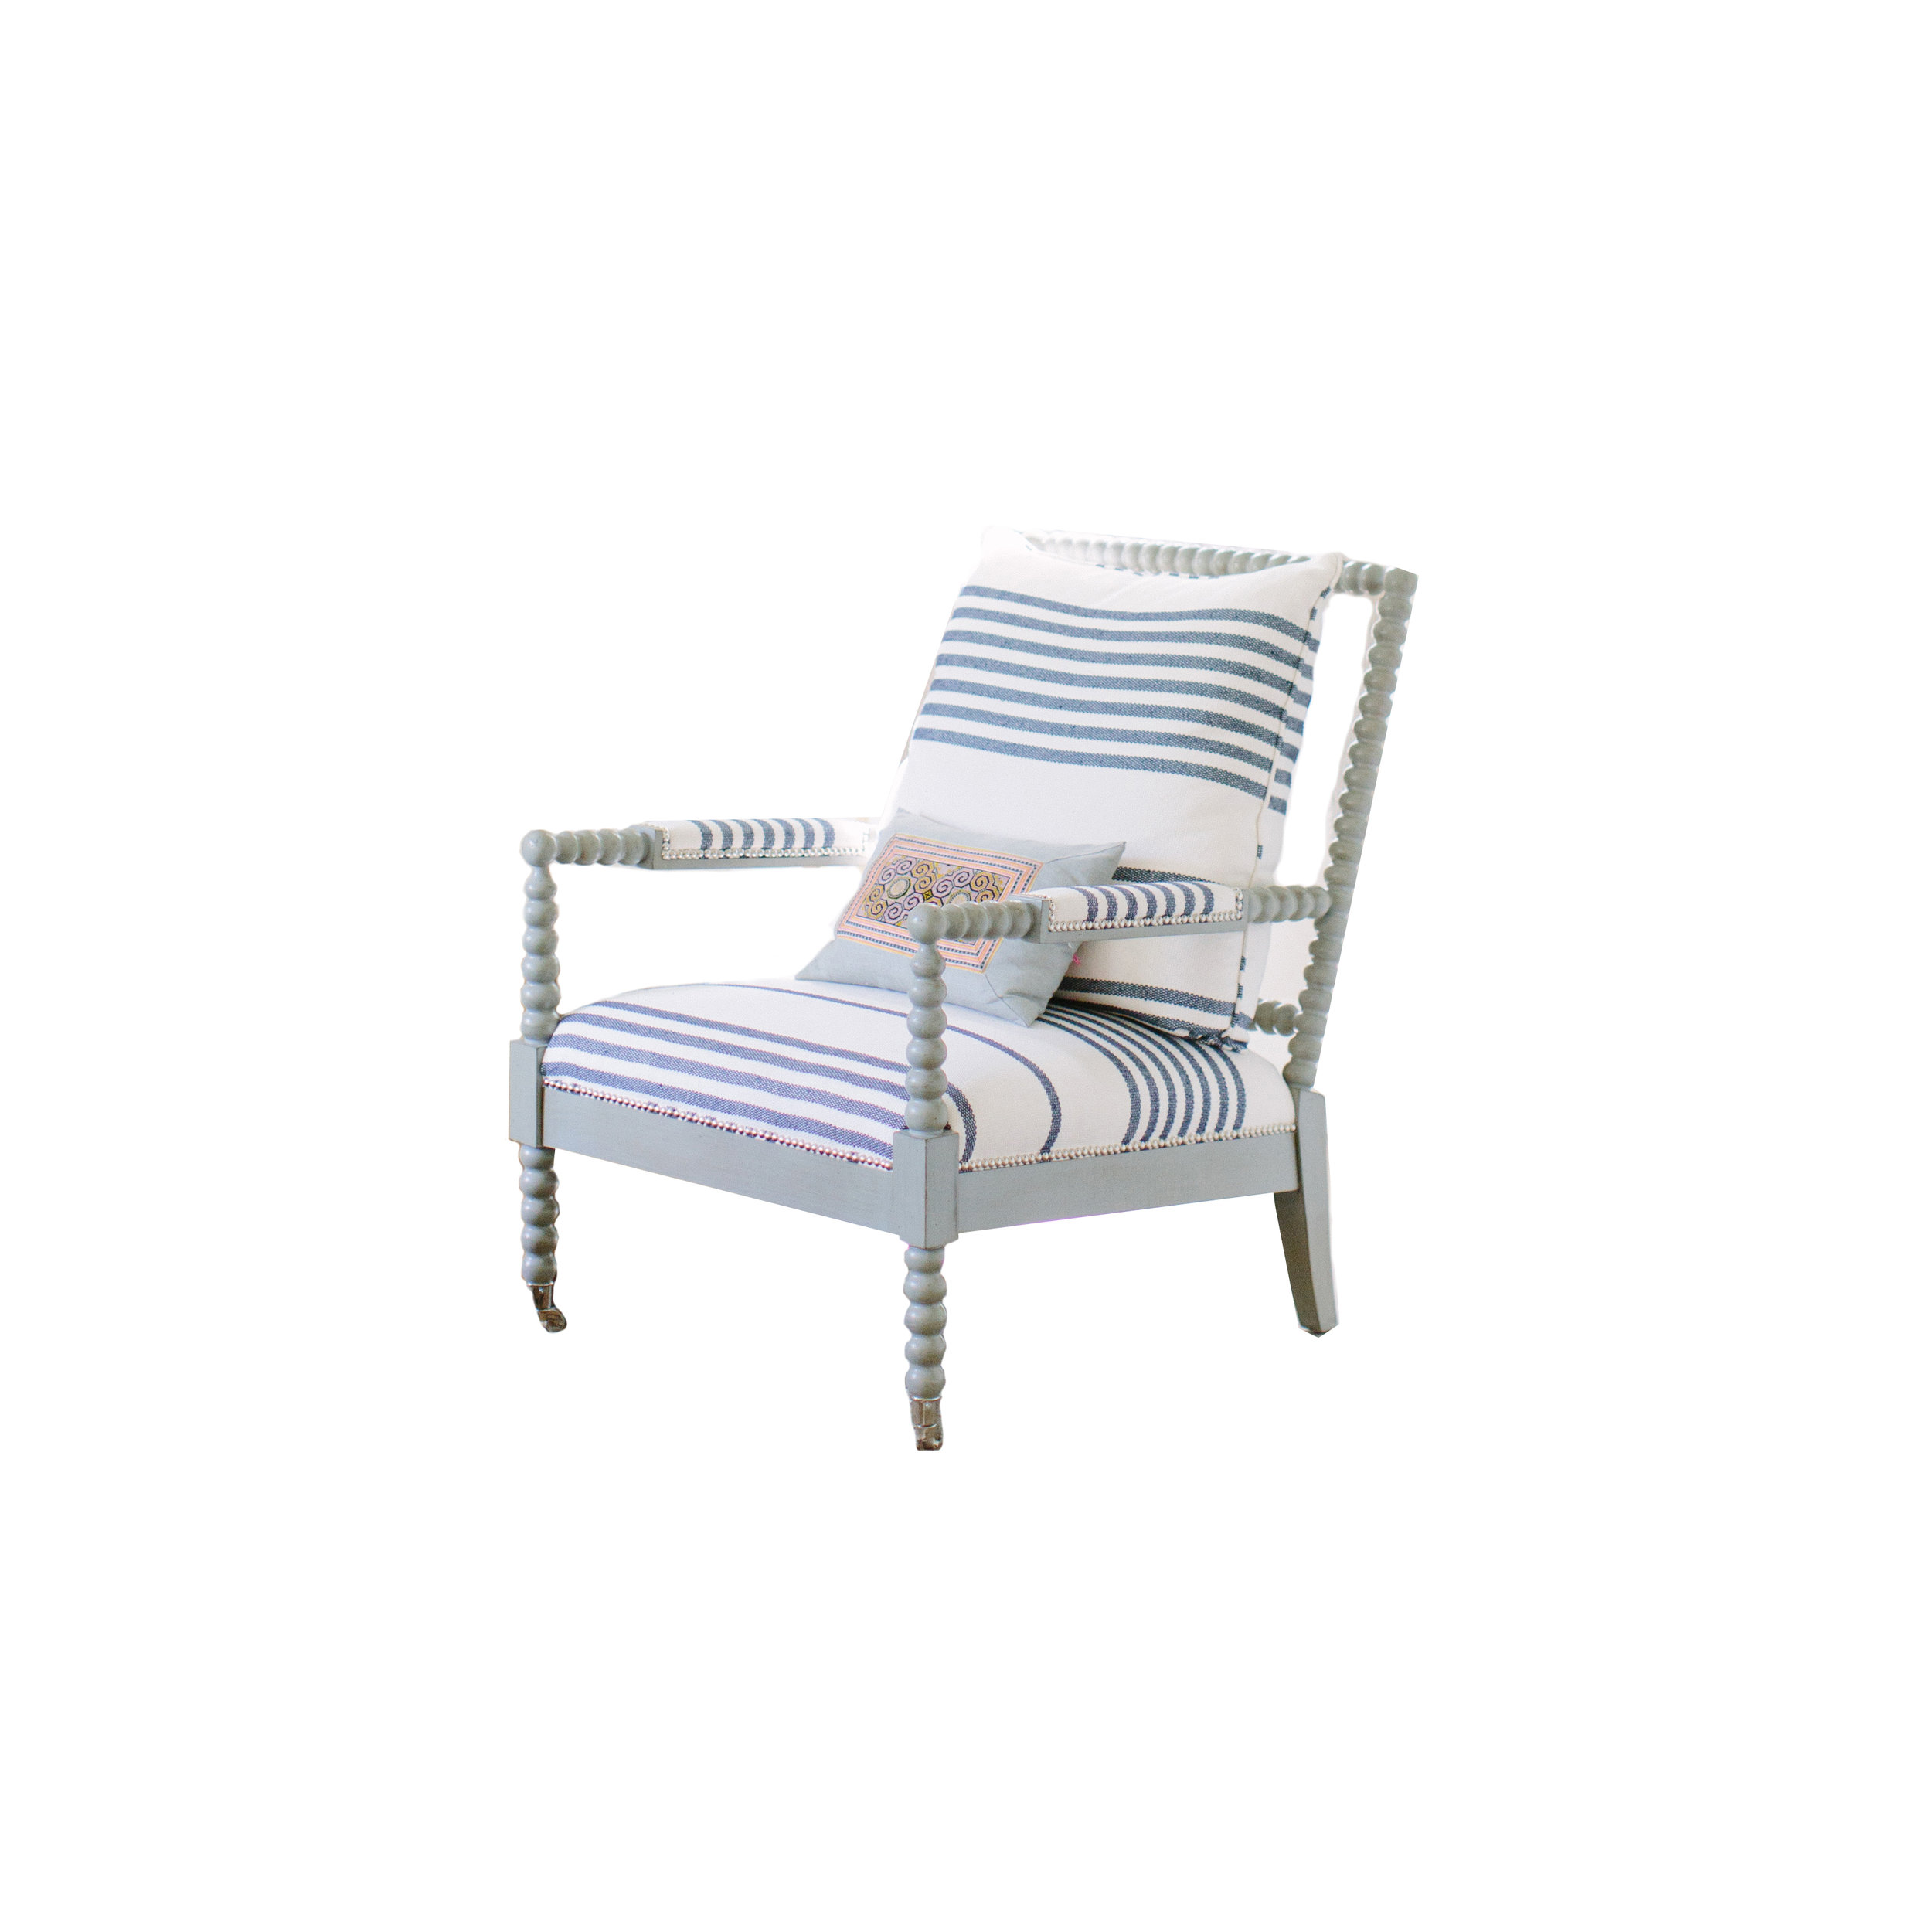 Spindle Chair white bkgd.jpg